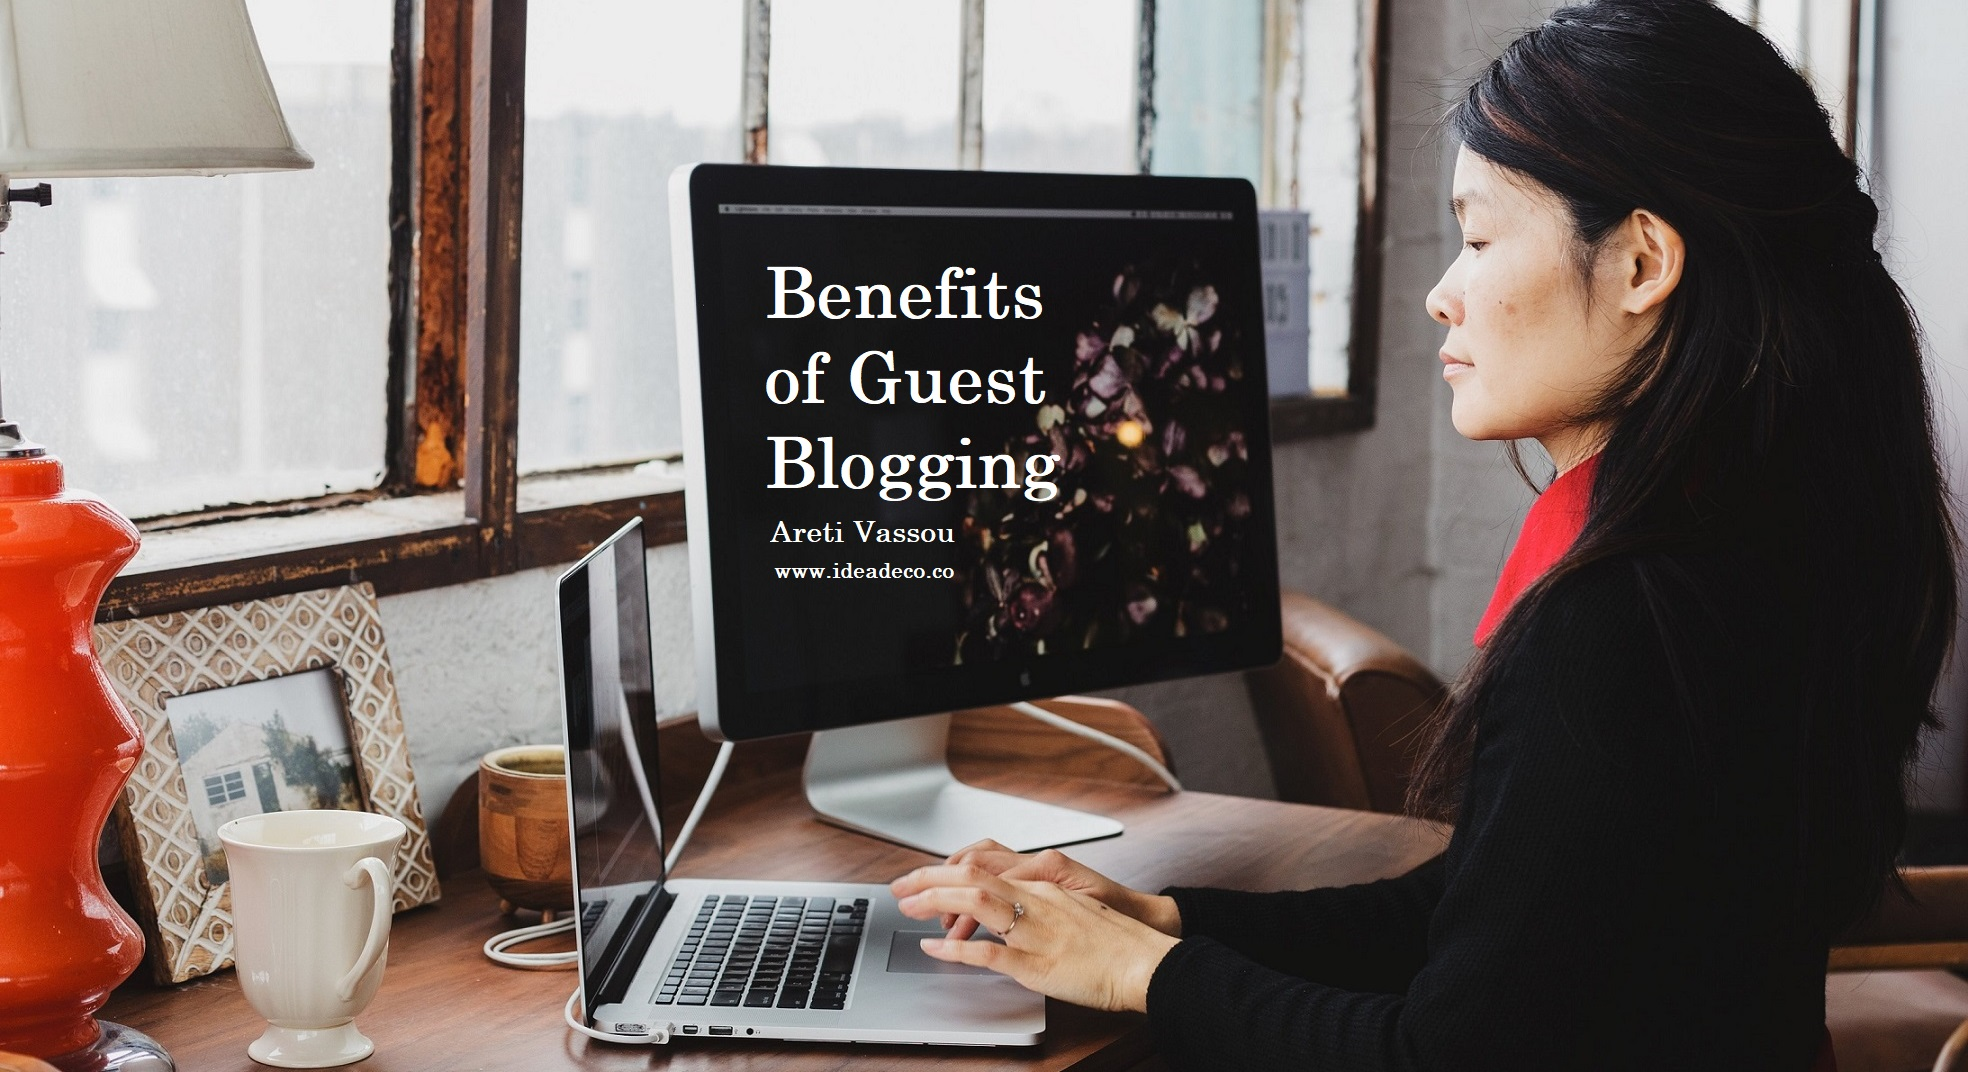 Benefits of Guest Blogging by Areti Vassou